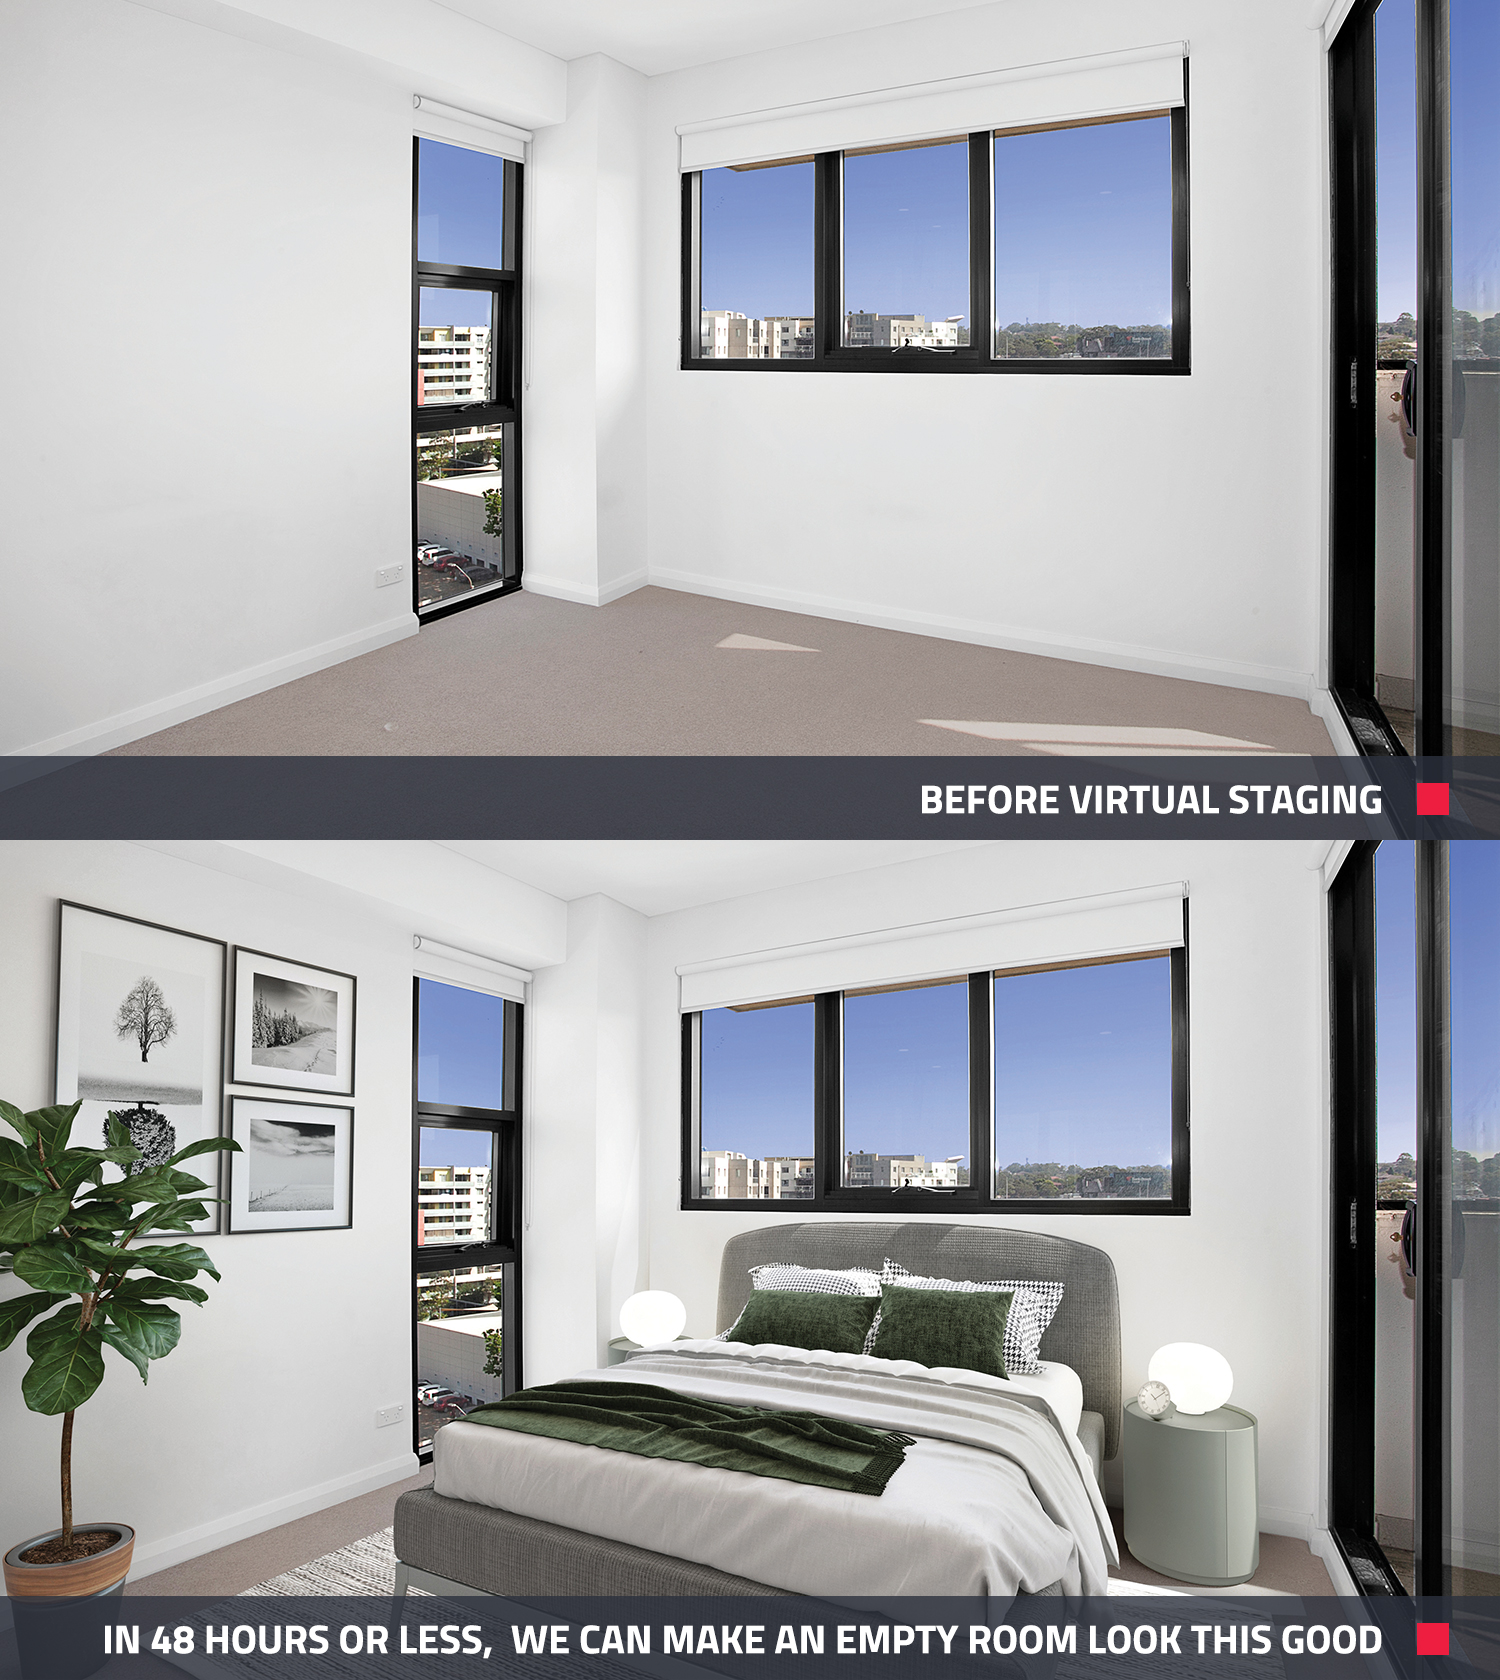 The before and after view of a bedroom when it is virtually staged